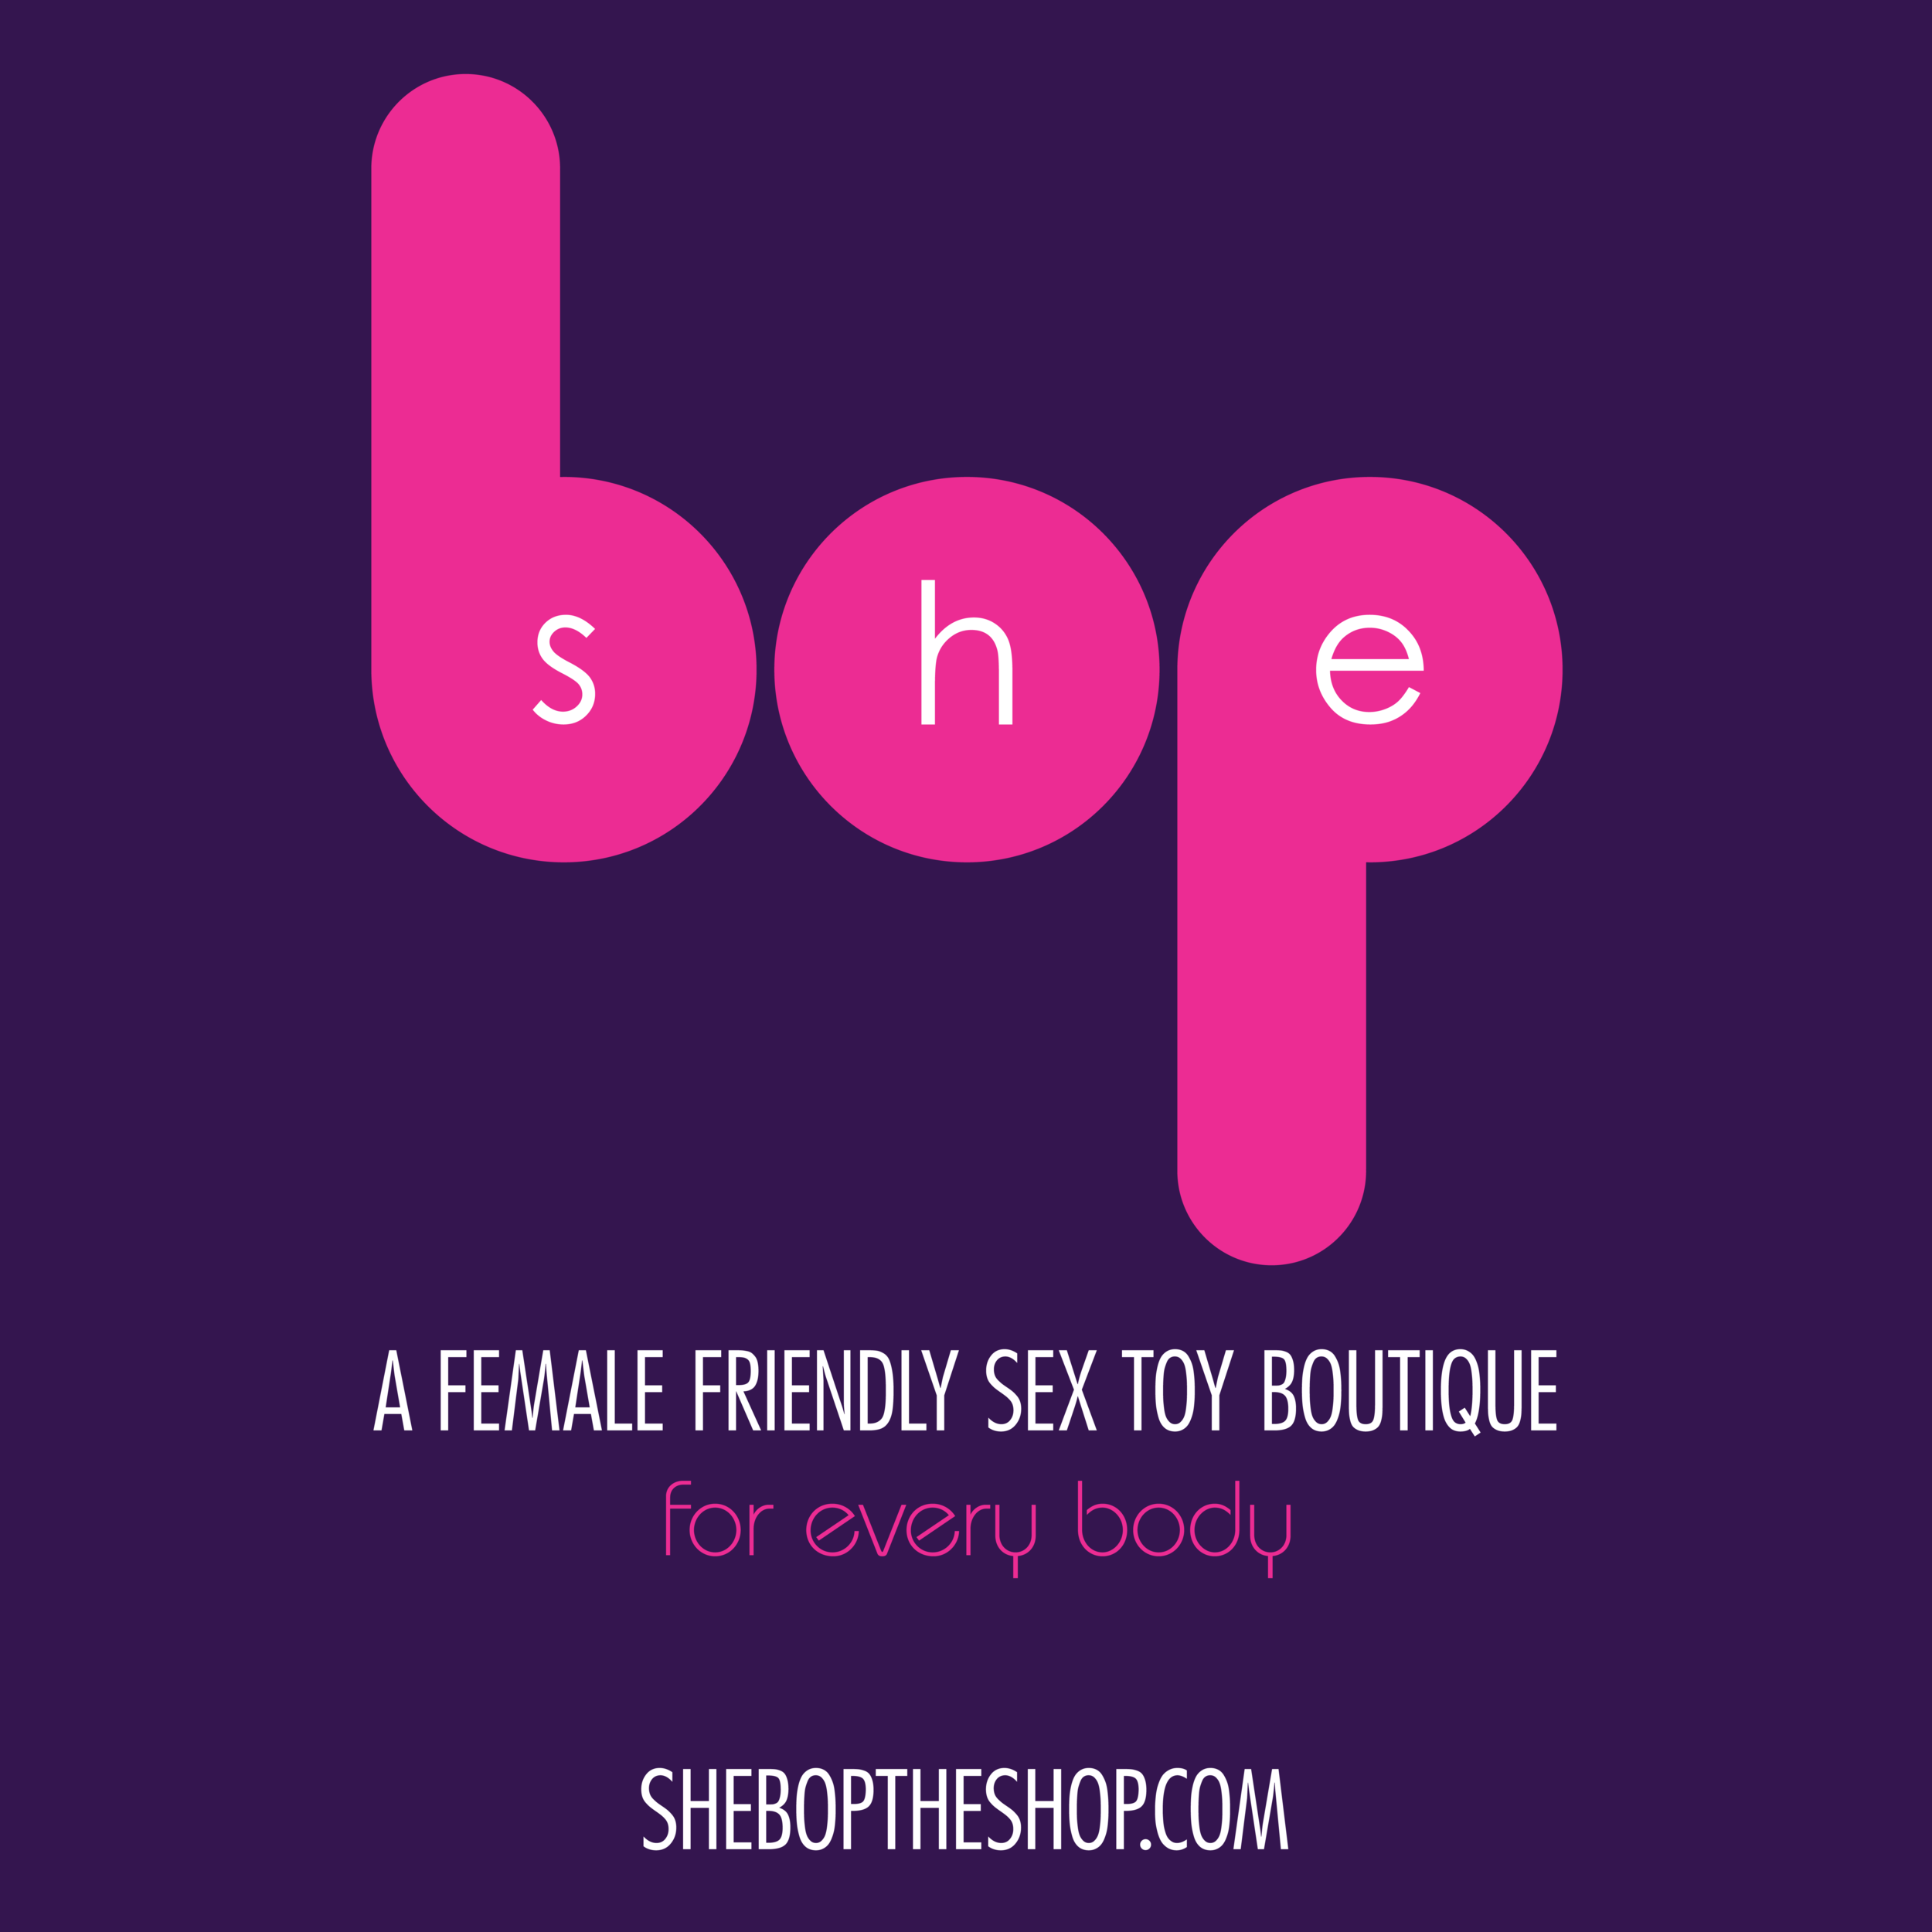 she-bop-logo-pink-purple.png